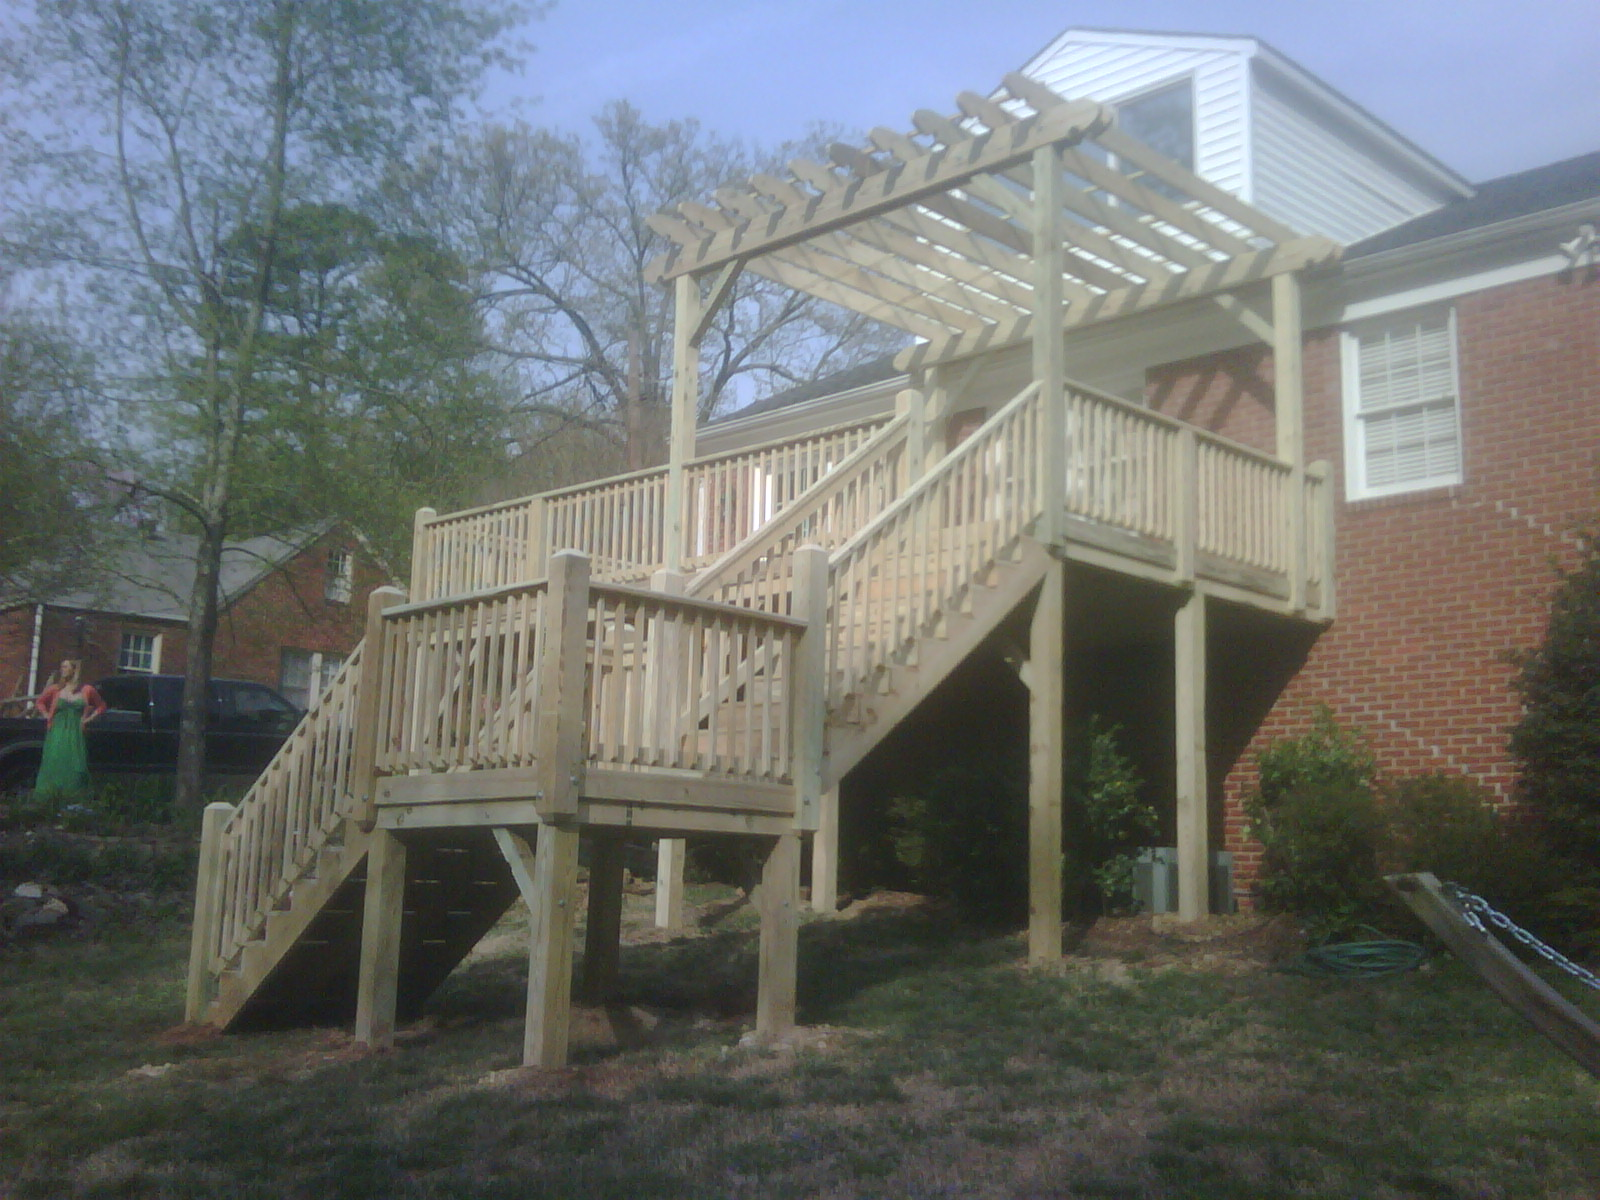 12' x 24' Deck with trellis